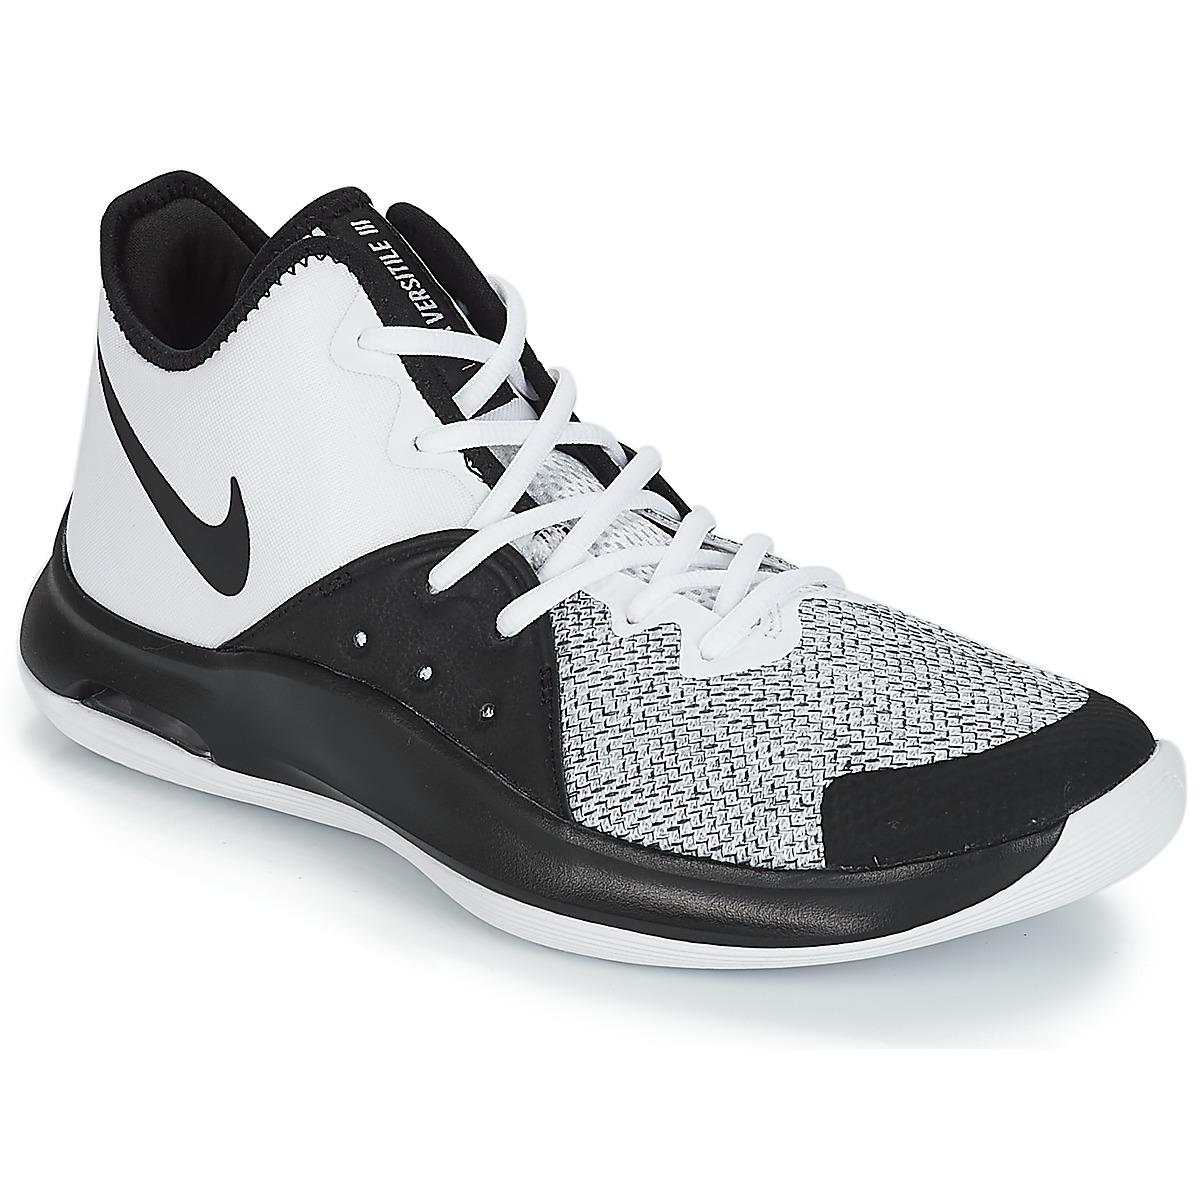 sports shoes b8c2b 4ef28 Nike. Air Versitile Iii Men s Basketball Trainers ...